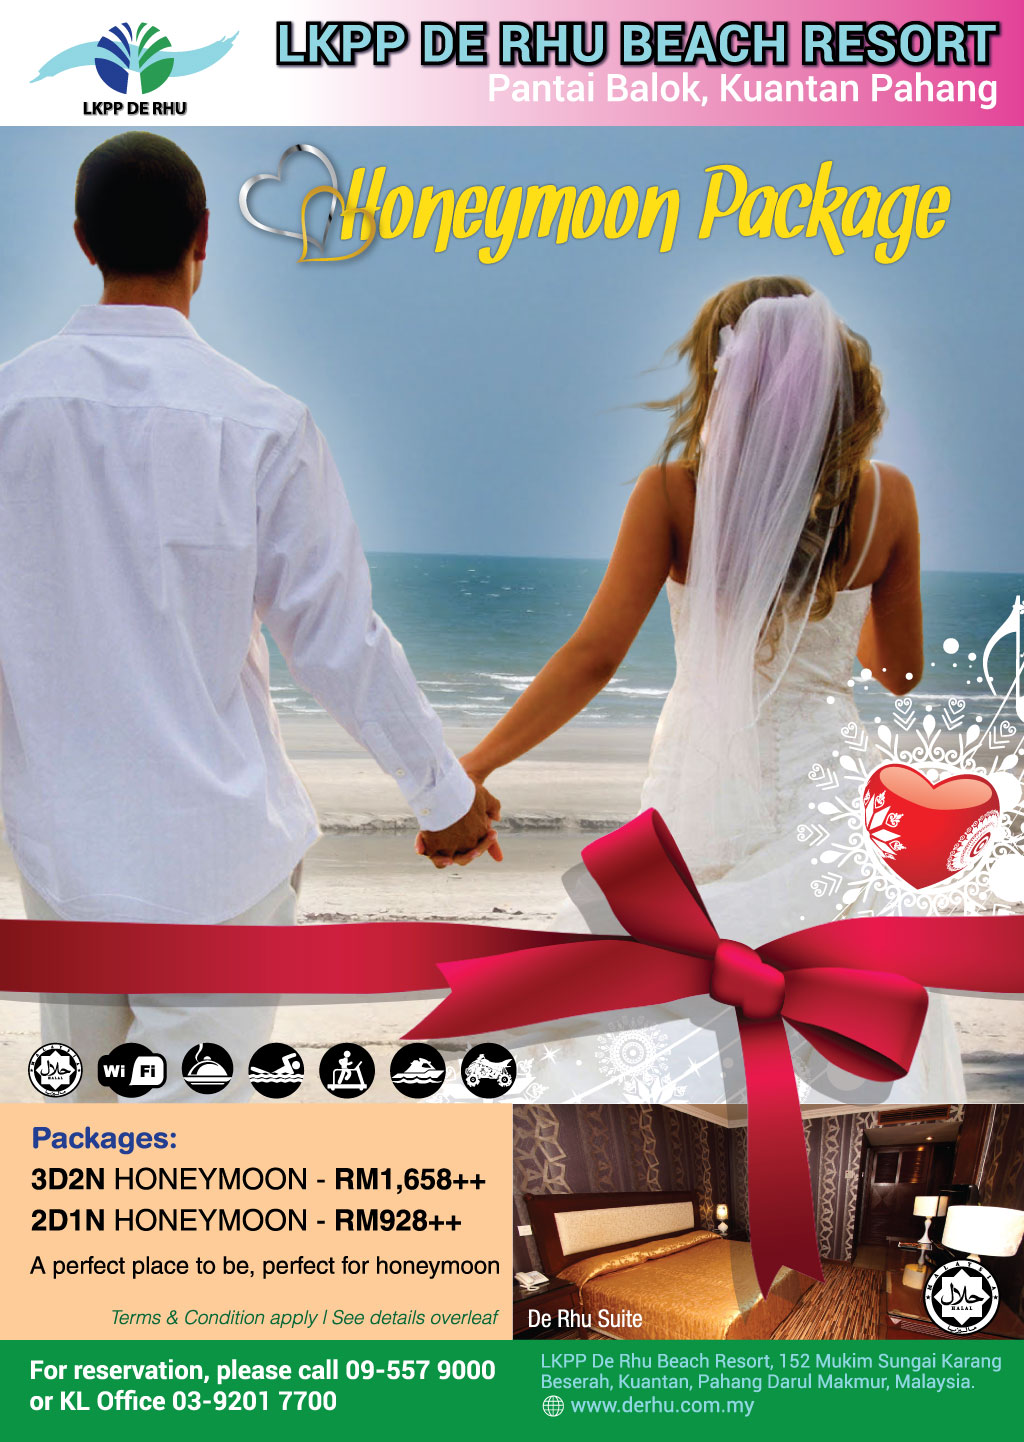 De-Rhu-Beach-Resort-Honeymoon-Package-2016